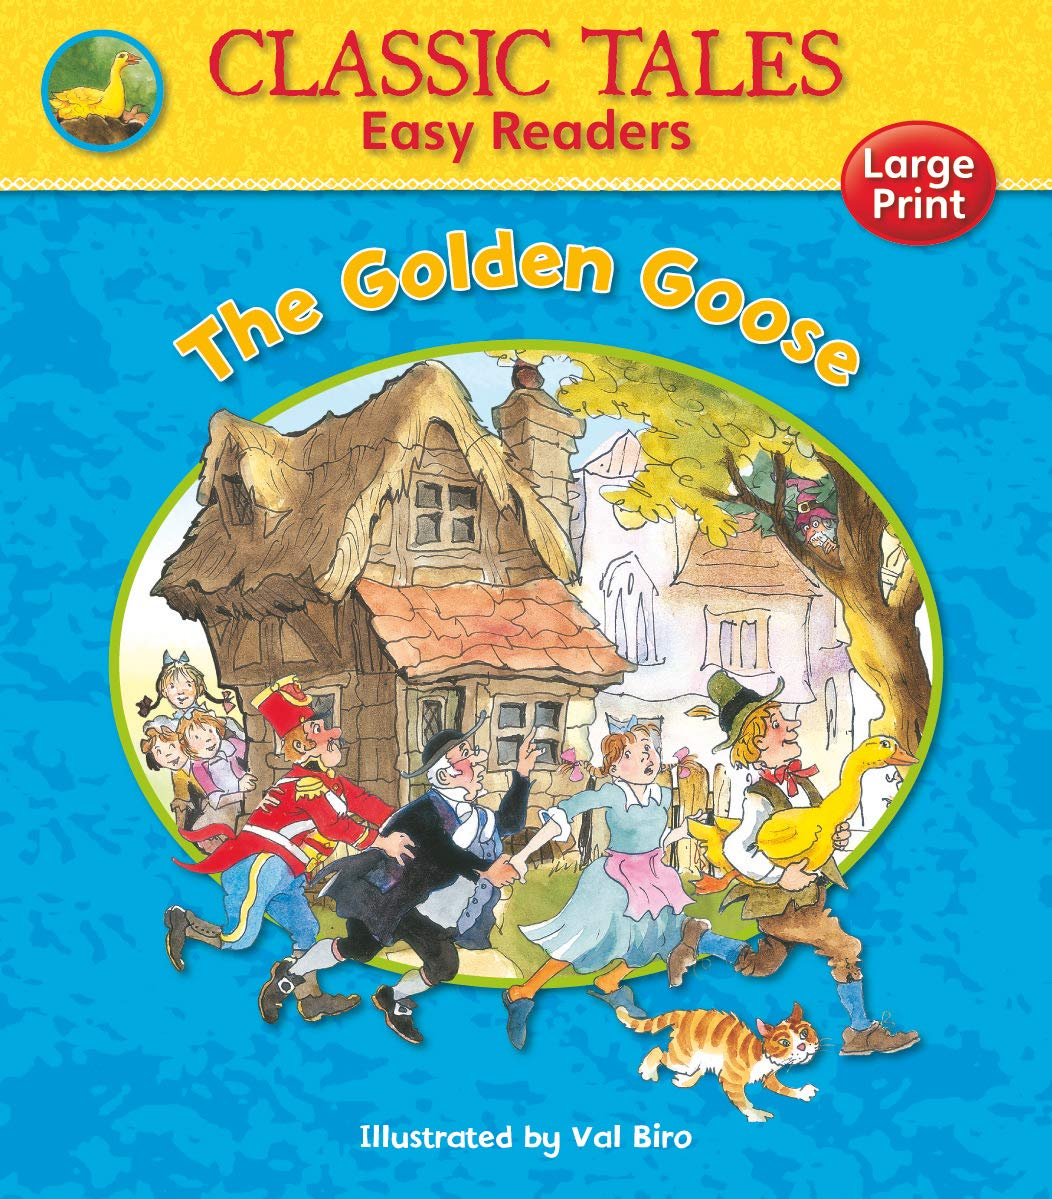 THE GOLDEN GOOSE (CLASSIC TALES EASY READERS)